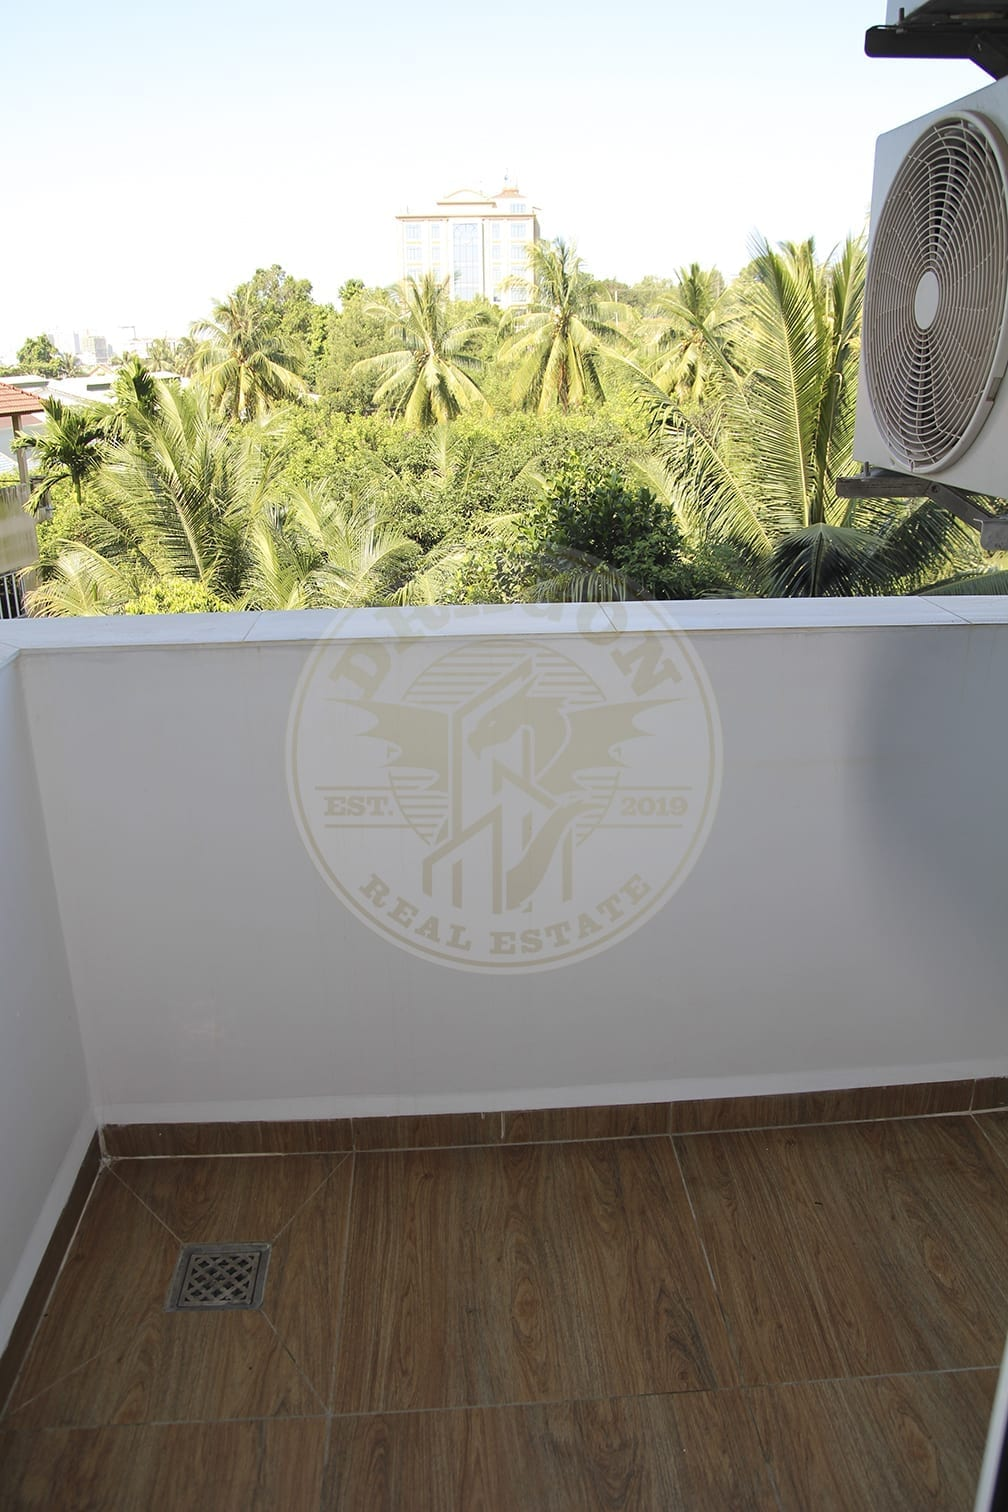 Unique and very Upscale Apartment in Sihanoukville. Real Estate in Sihanoukville